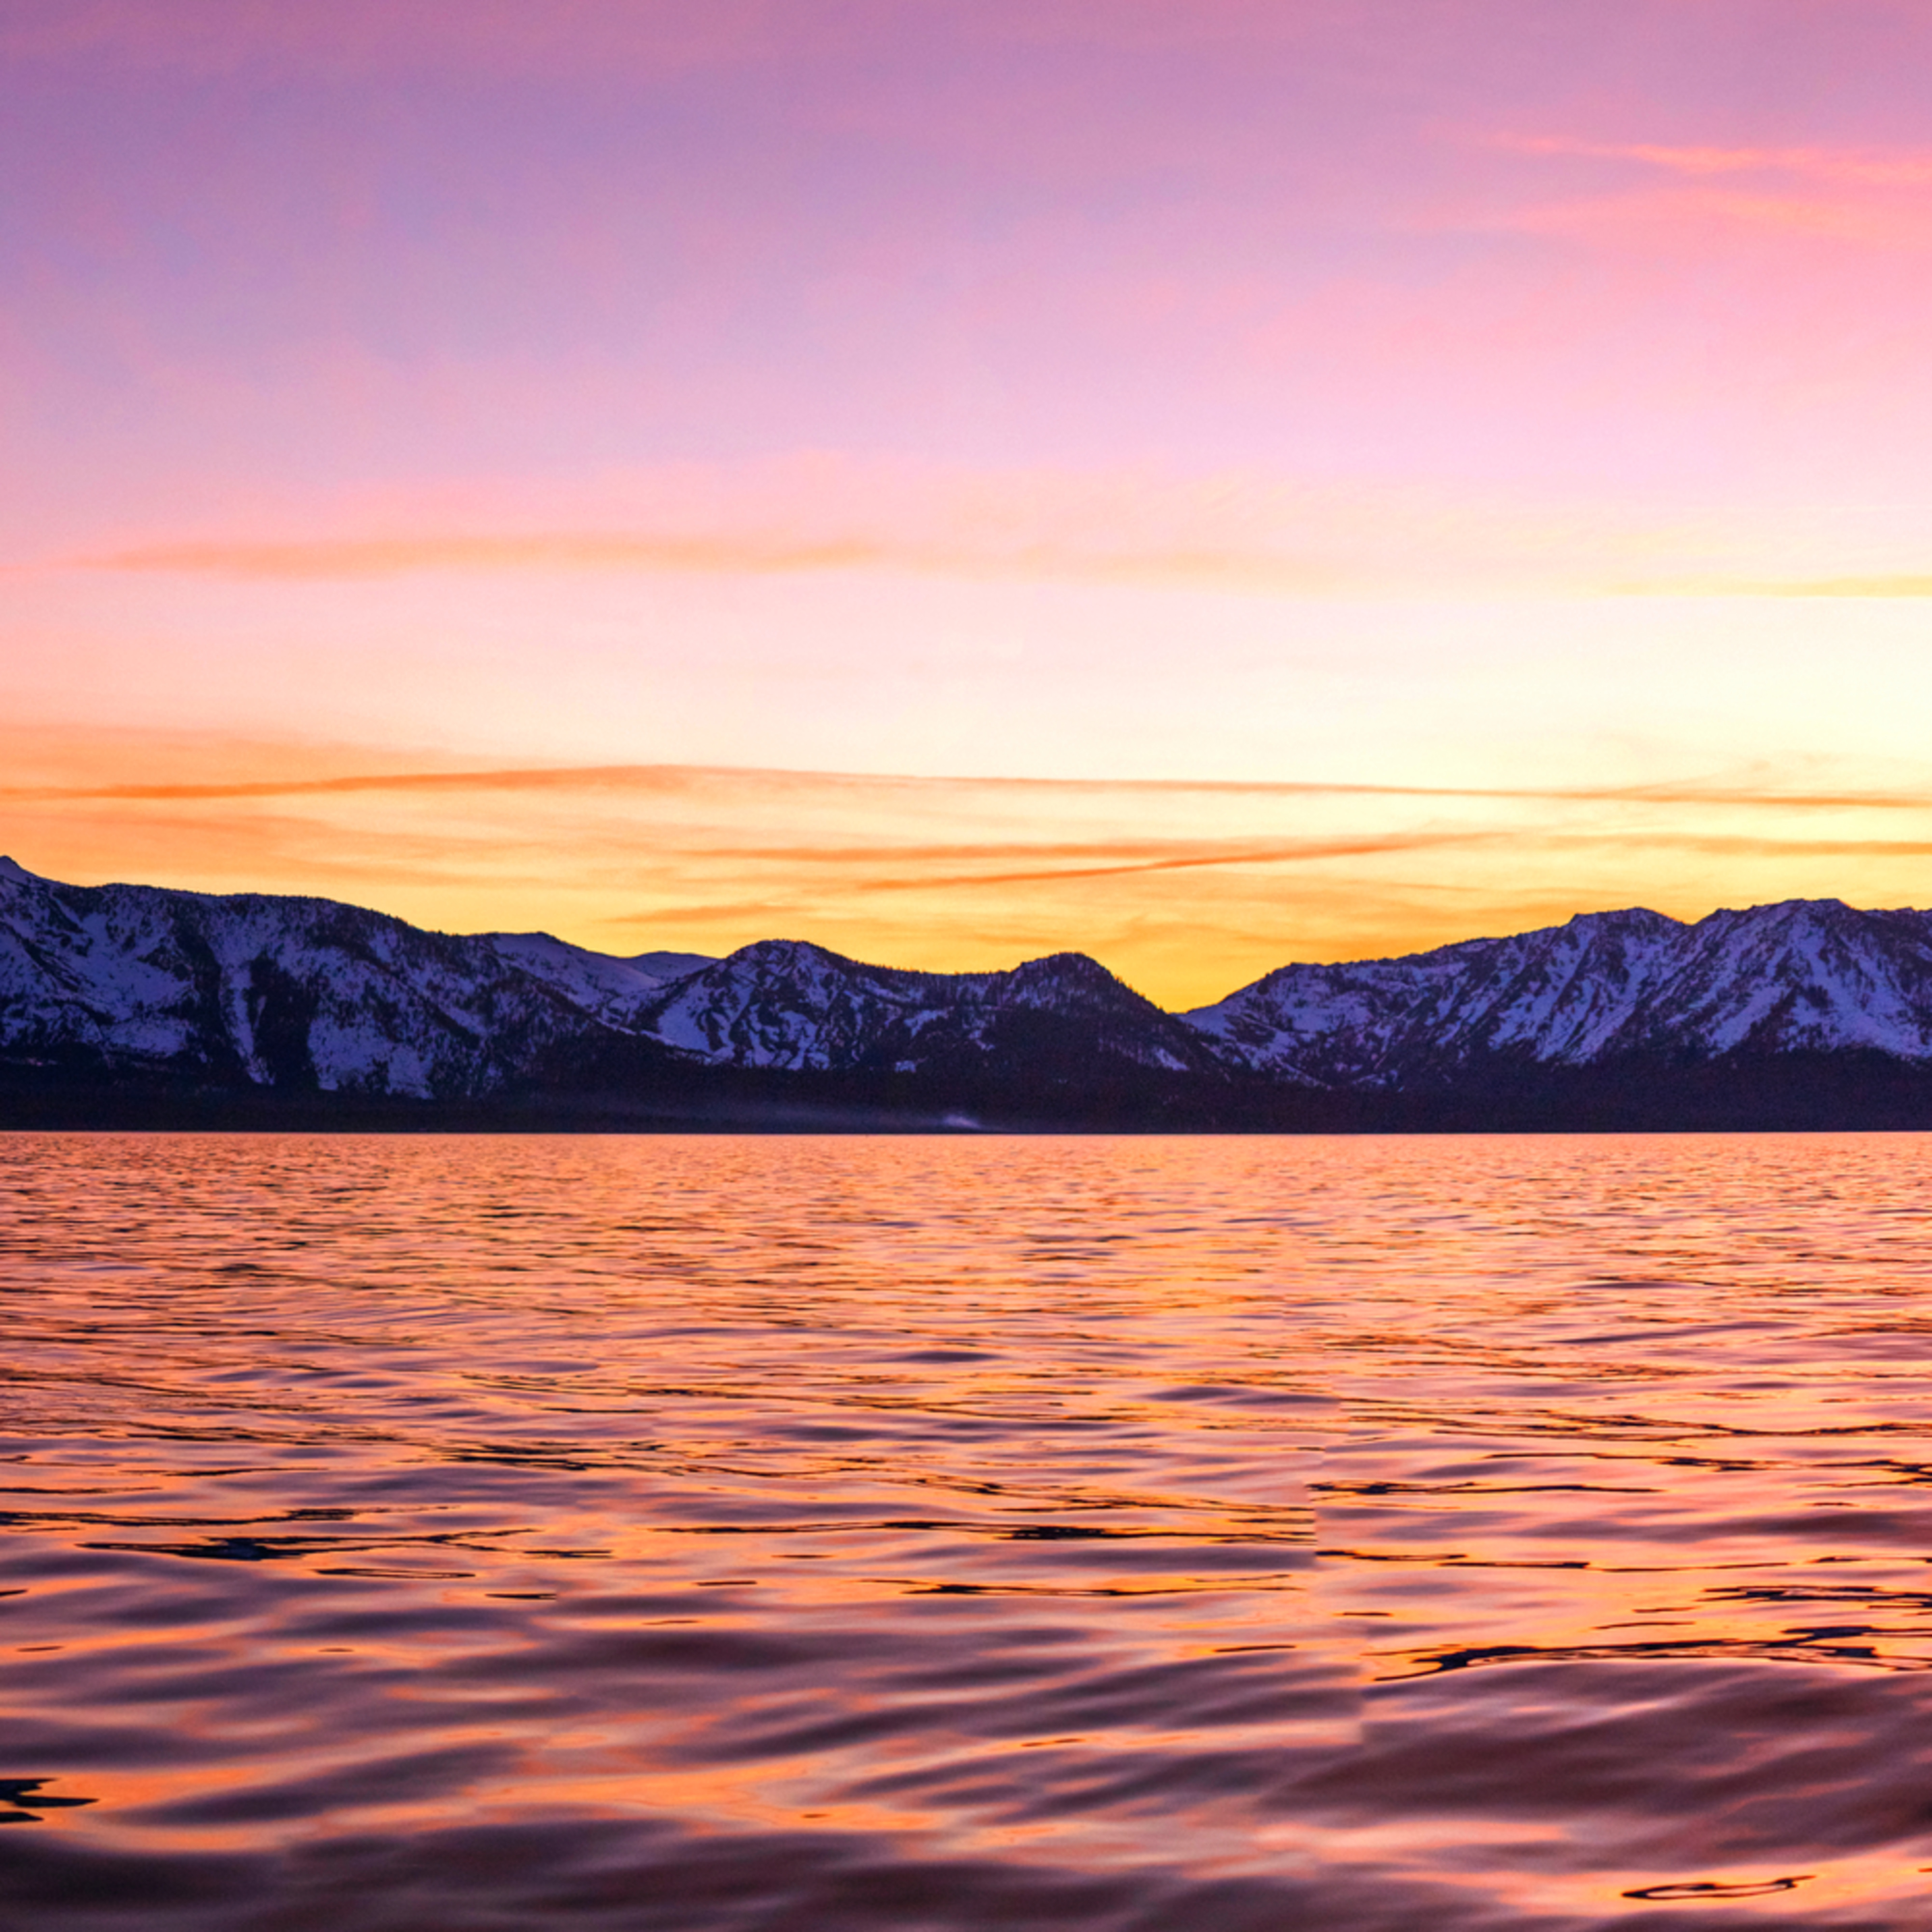 Boat sunset over tallac dxpoea